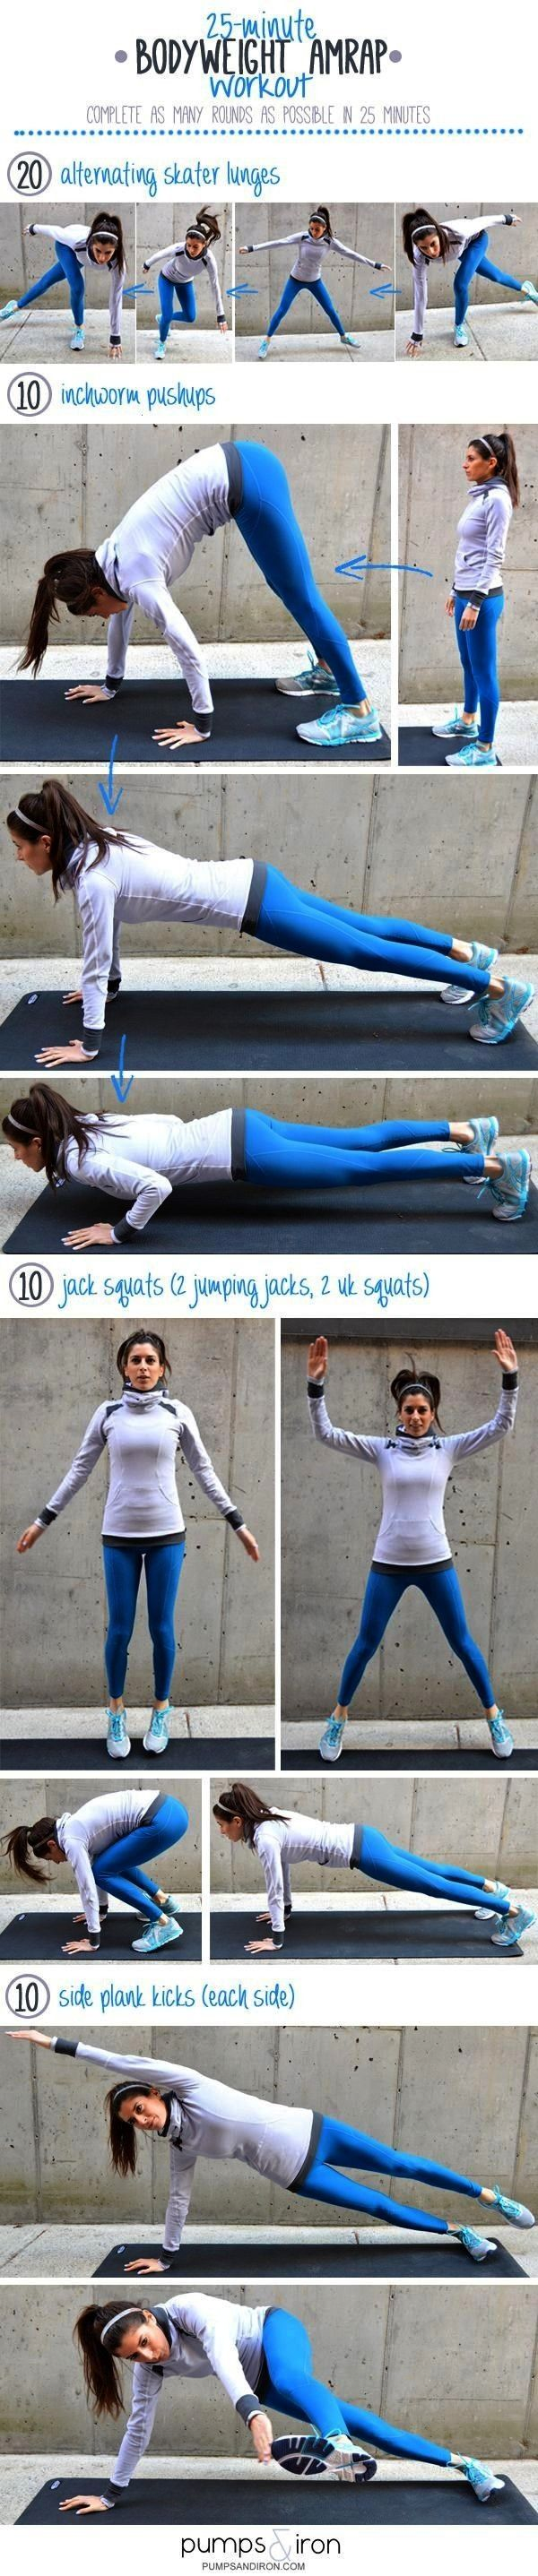 #anytime25minute #amrap25minute #bodyweight #transform #exercise #yourself #25minute #fitness #anyti...